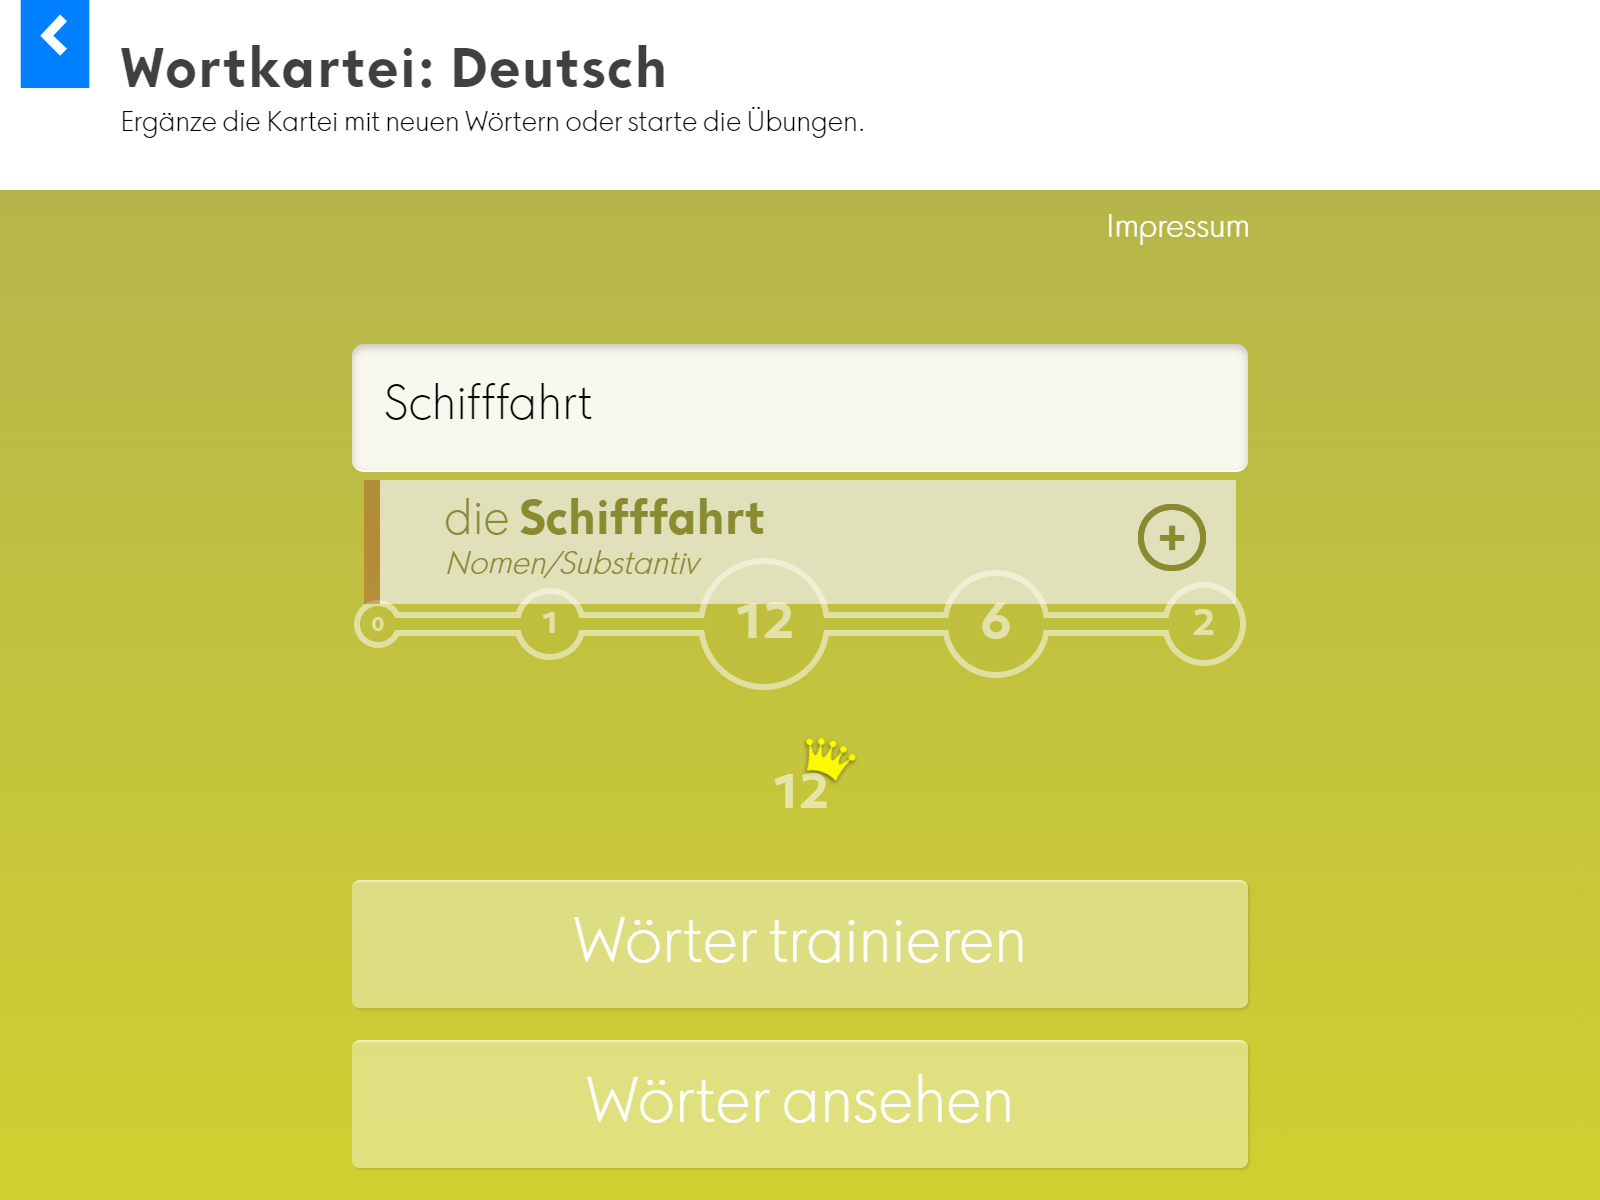 Wortkartei: Deutsch Background 1